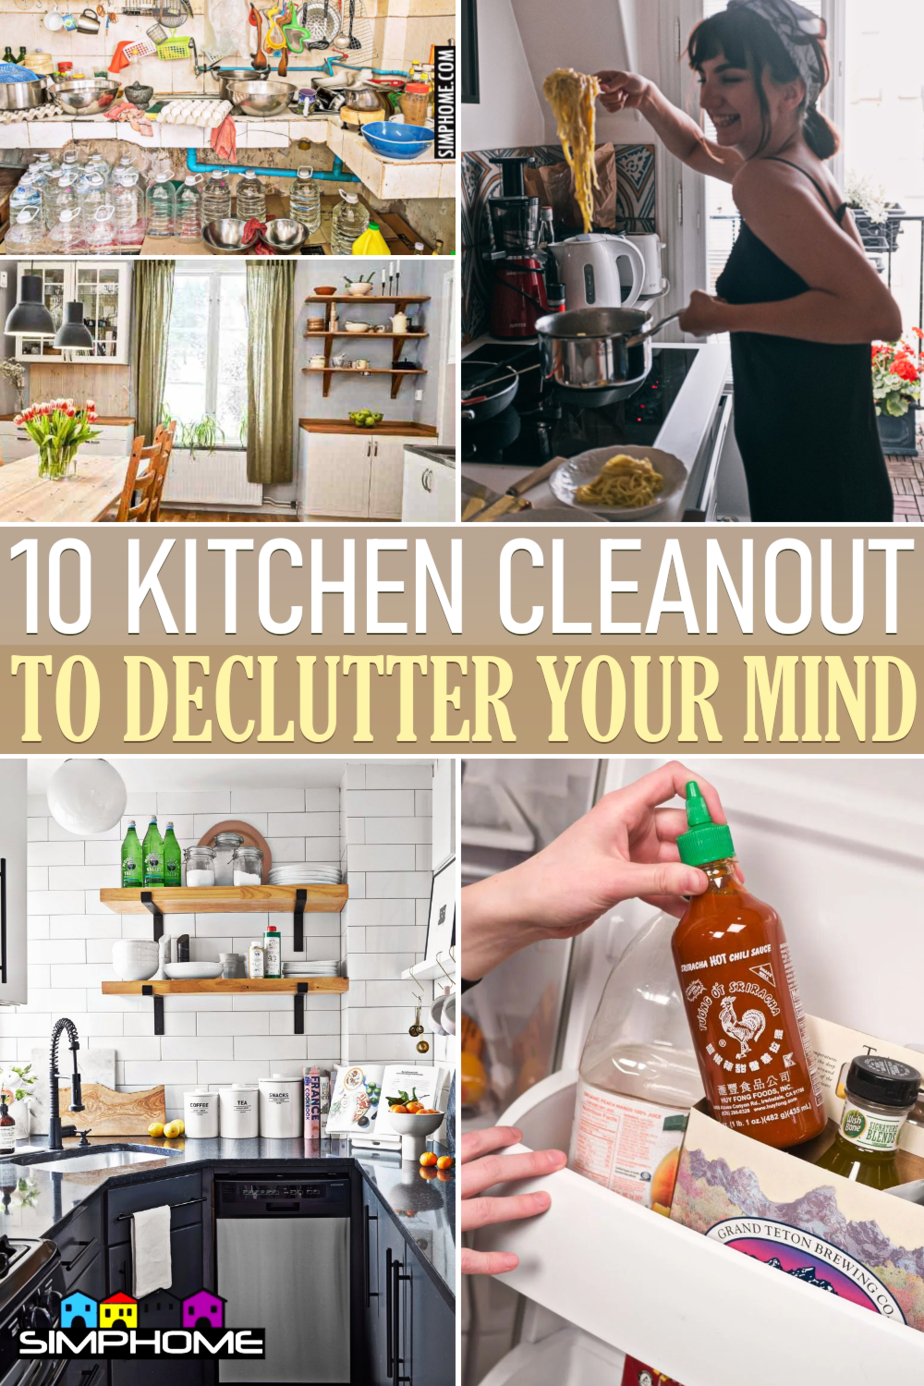 10 Kitchen Cleanout to Declutter your Mind via Simphome.comFeatured